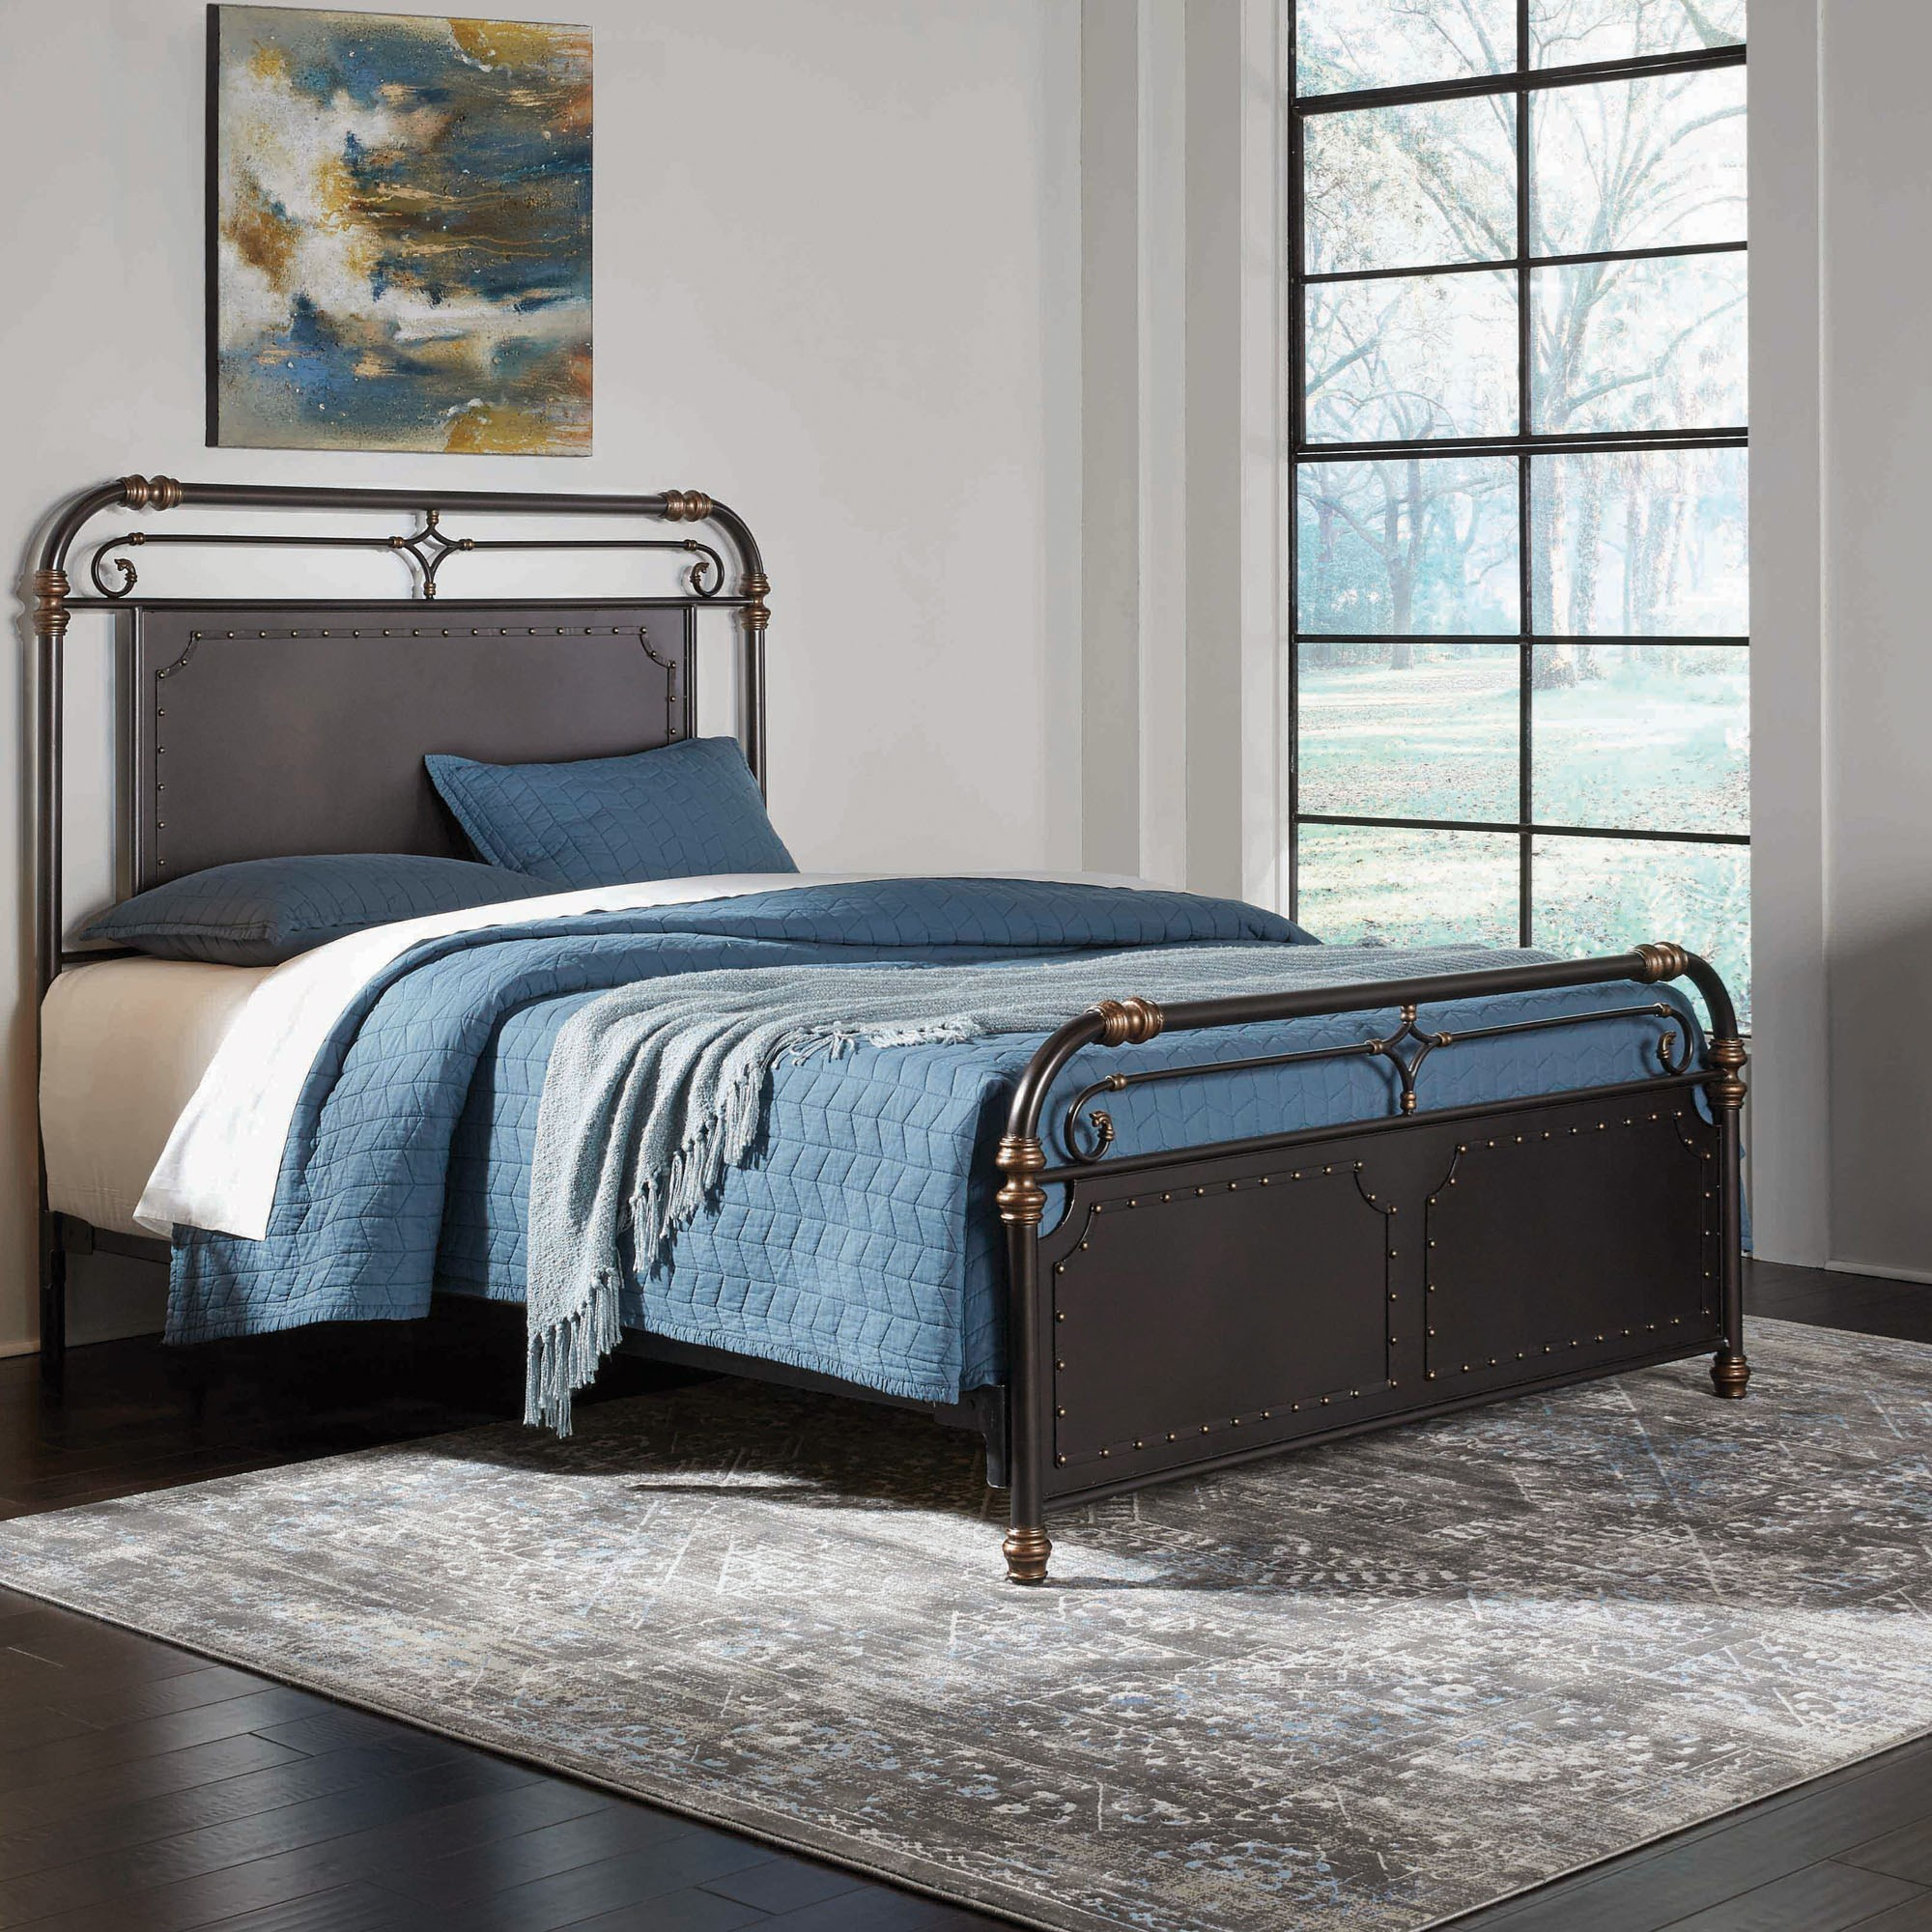 Fashion Bed Group Westchester B11d45 Queen Westchester Complete Metal Bed Hudson 39 S Furniture